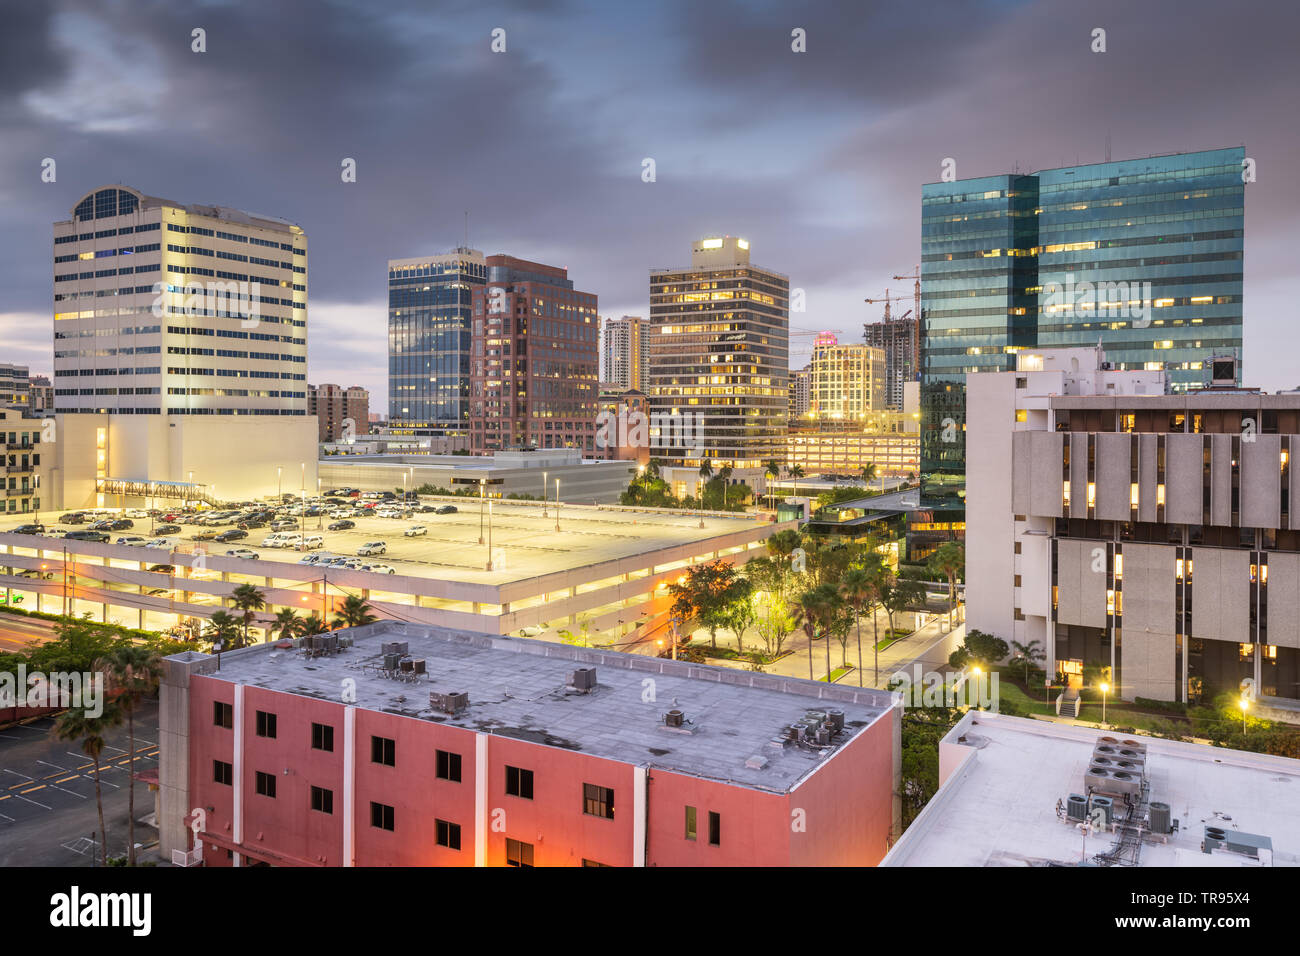 Ft. Lauderdale, Florida, USA downtown cityscape at dusk. - Stock Image